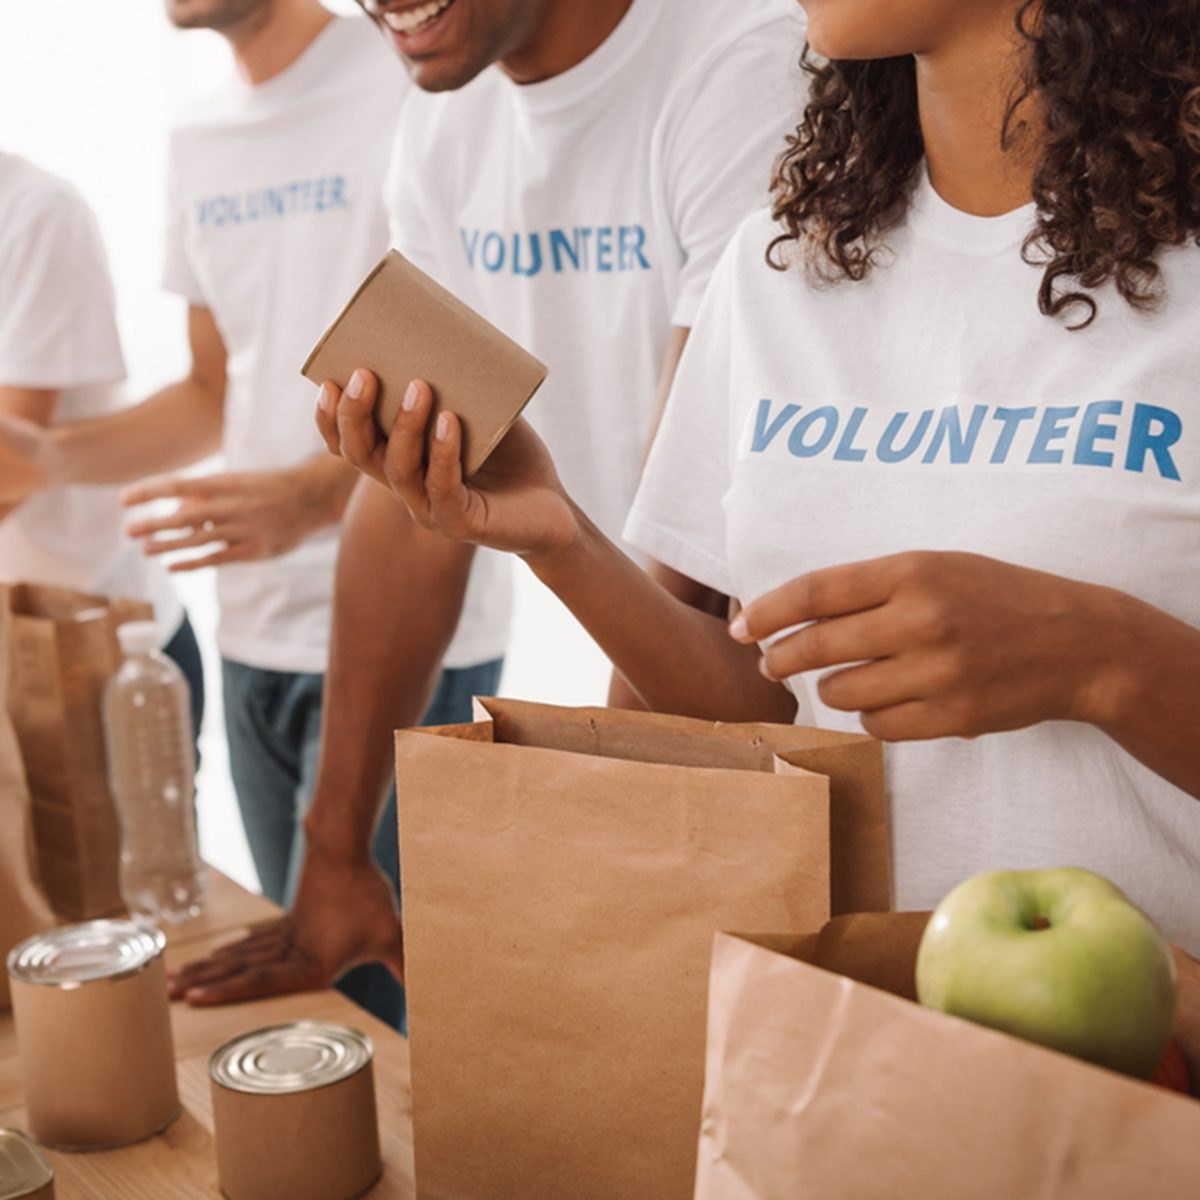 cropped shot of young volunteers group packing food and drinks for charity; Shutterstock ID 752375134; Job (TFH, TOH, RD, BNB, CWM, CM): TOH